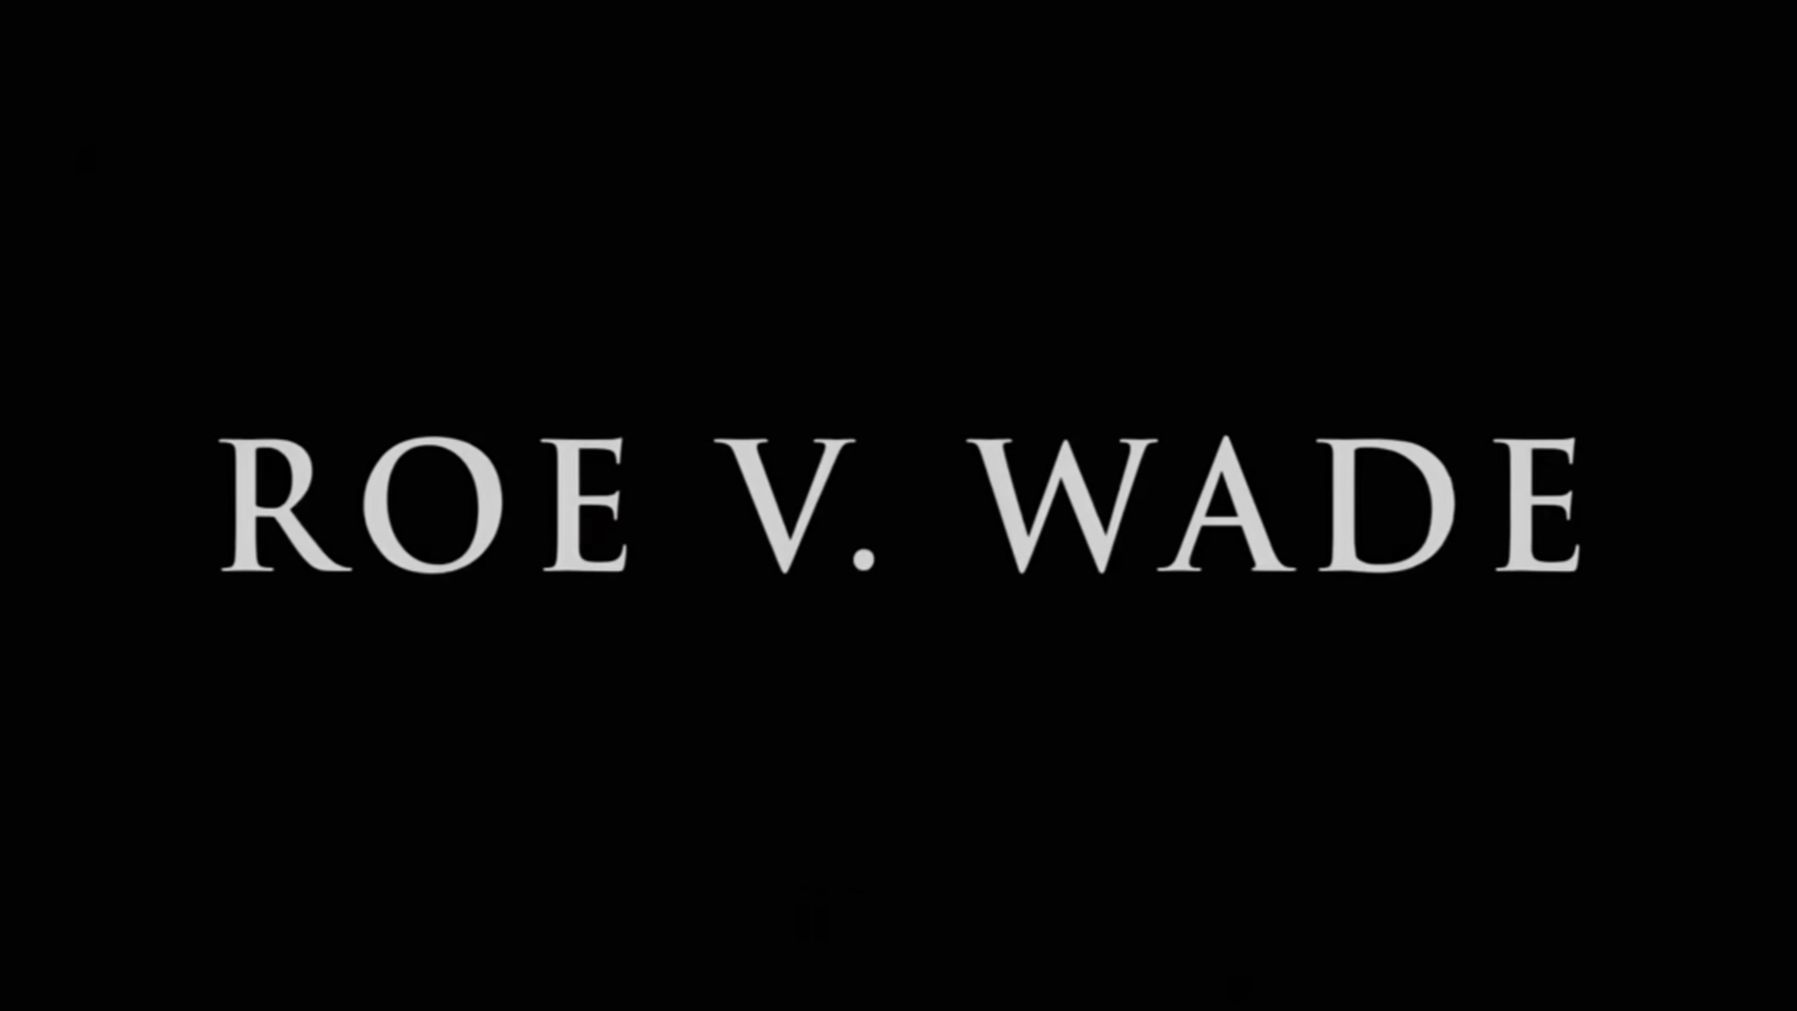 The trailer for that 'Roe v. Wade' movie has been released, and it features mostly men